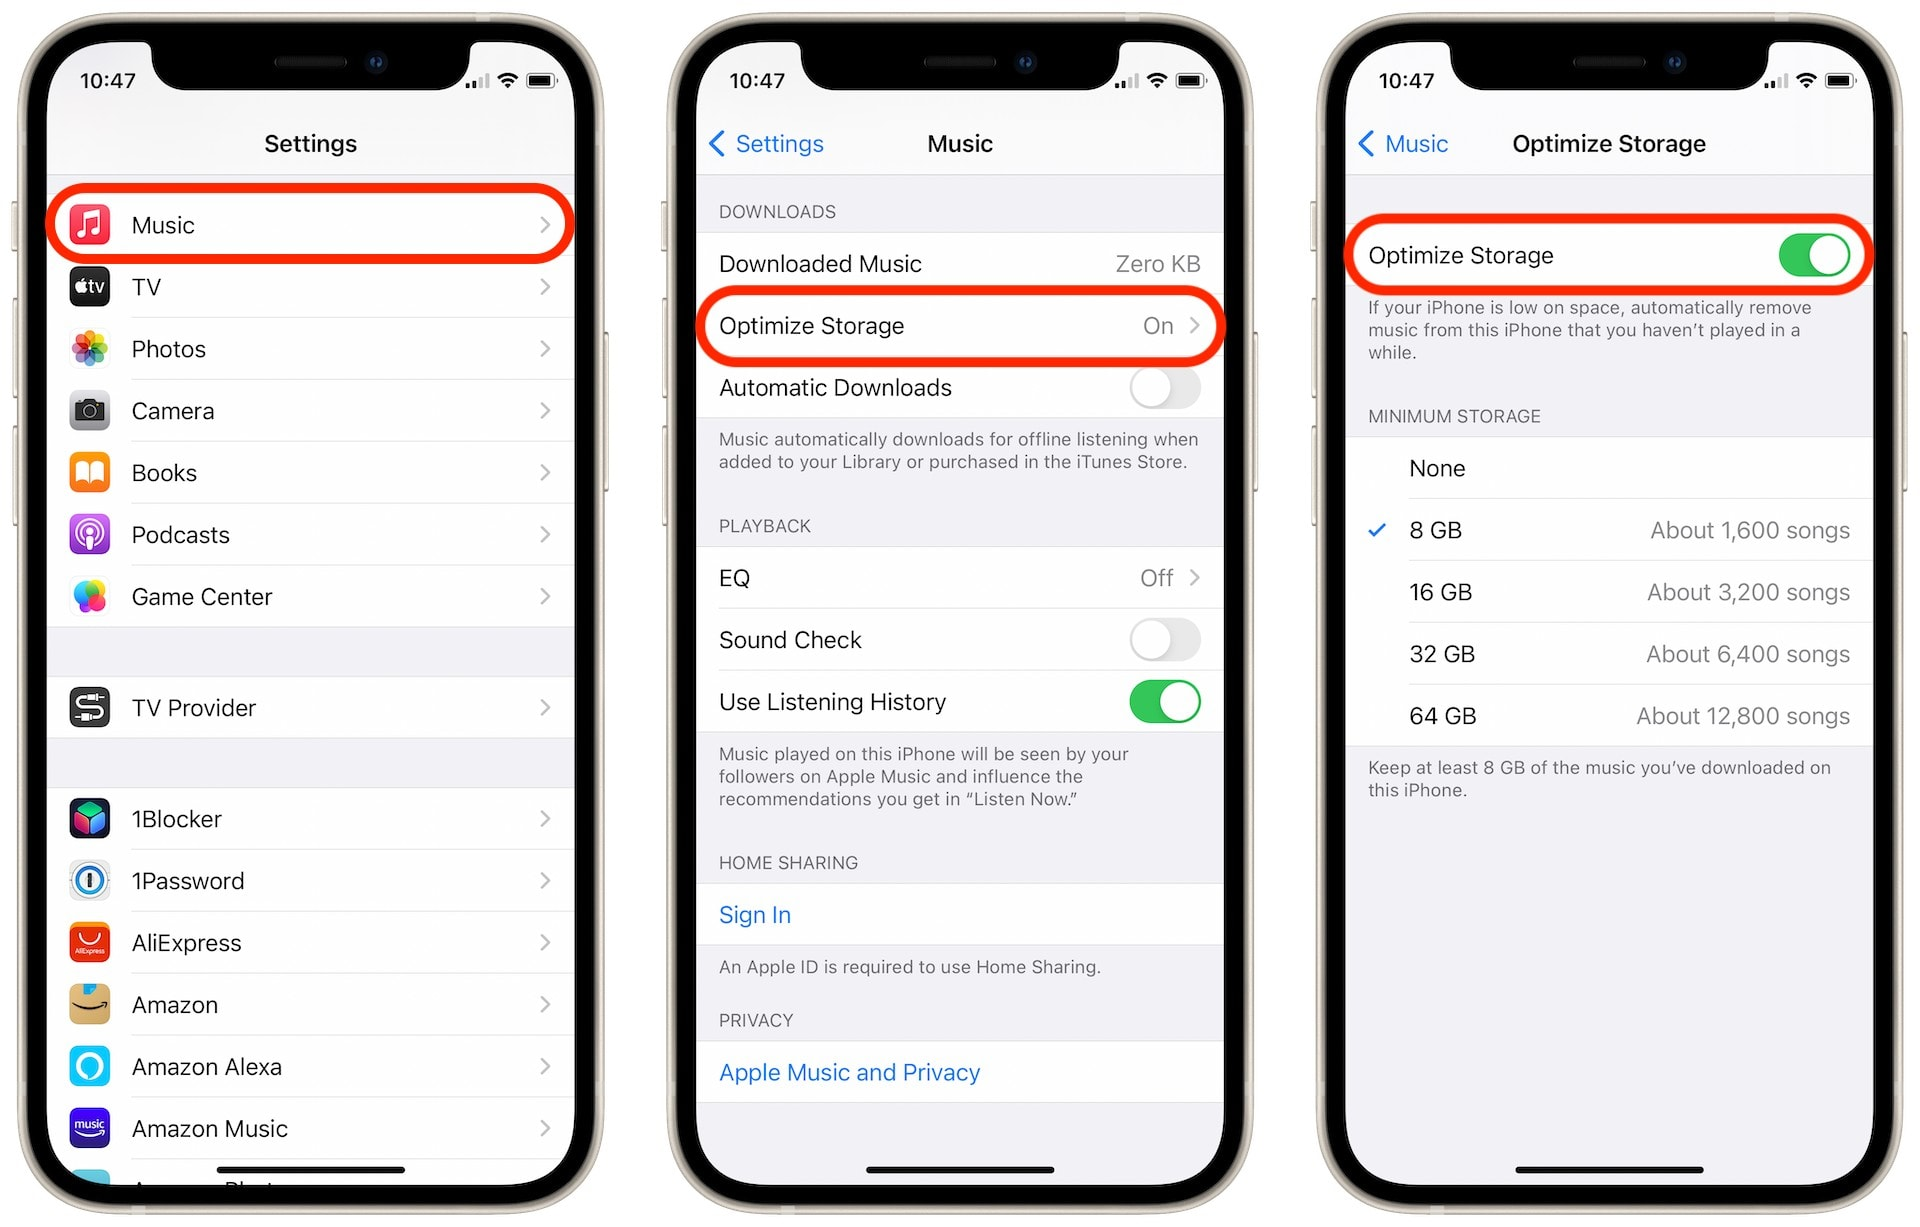 Prevent downloaded music from taking up too much storage on iPhone